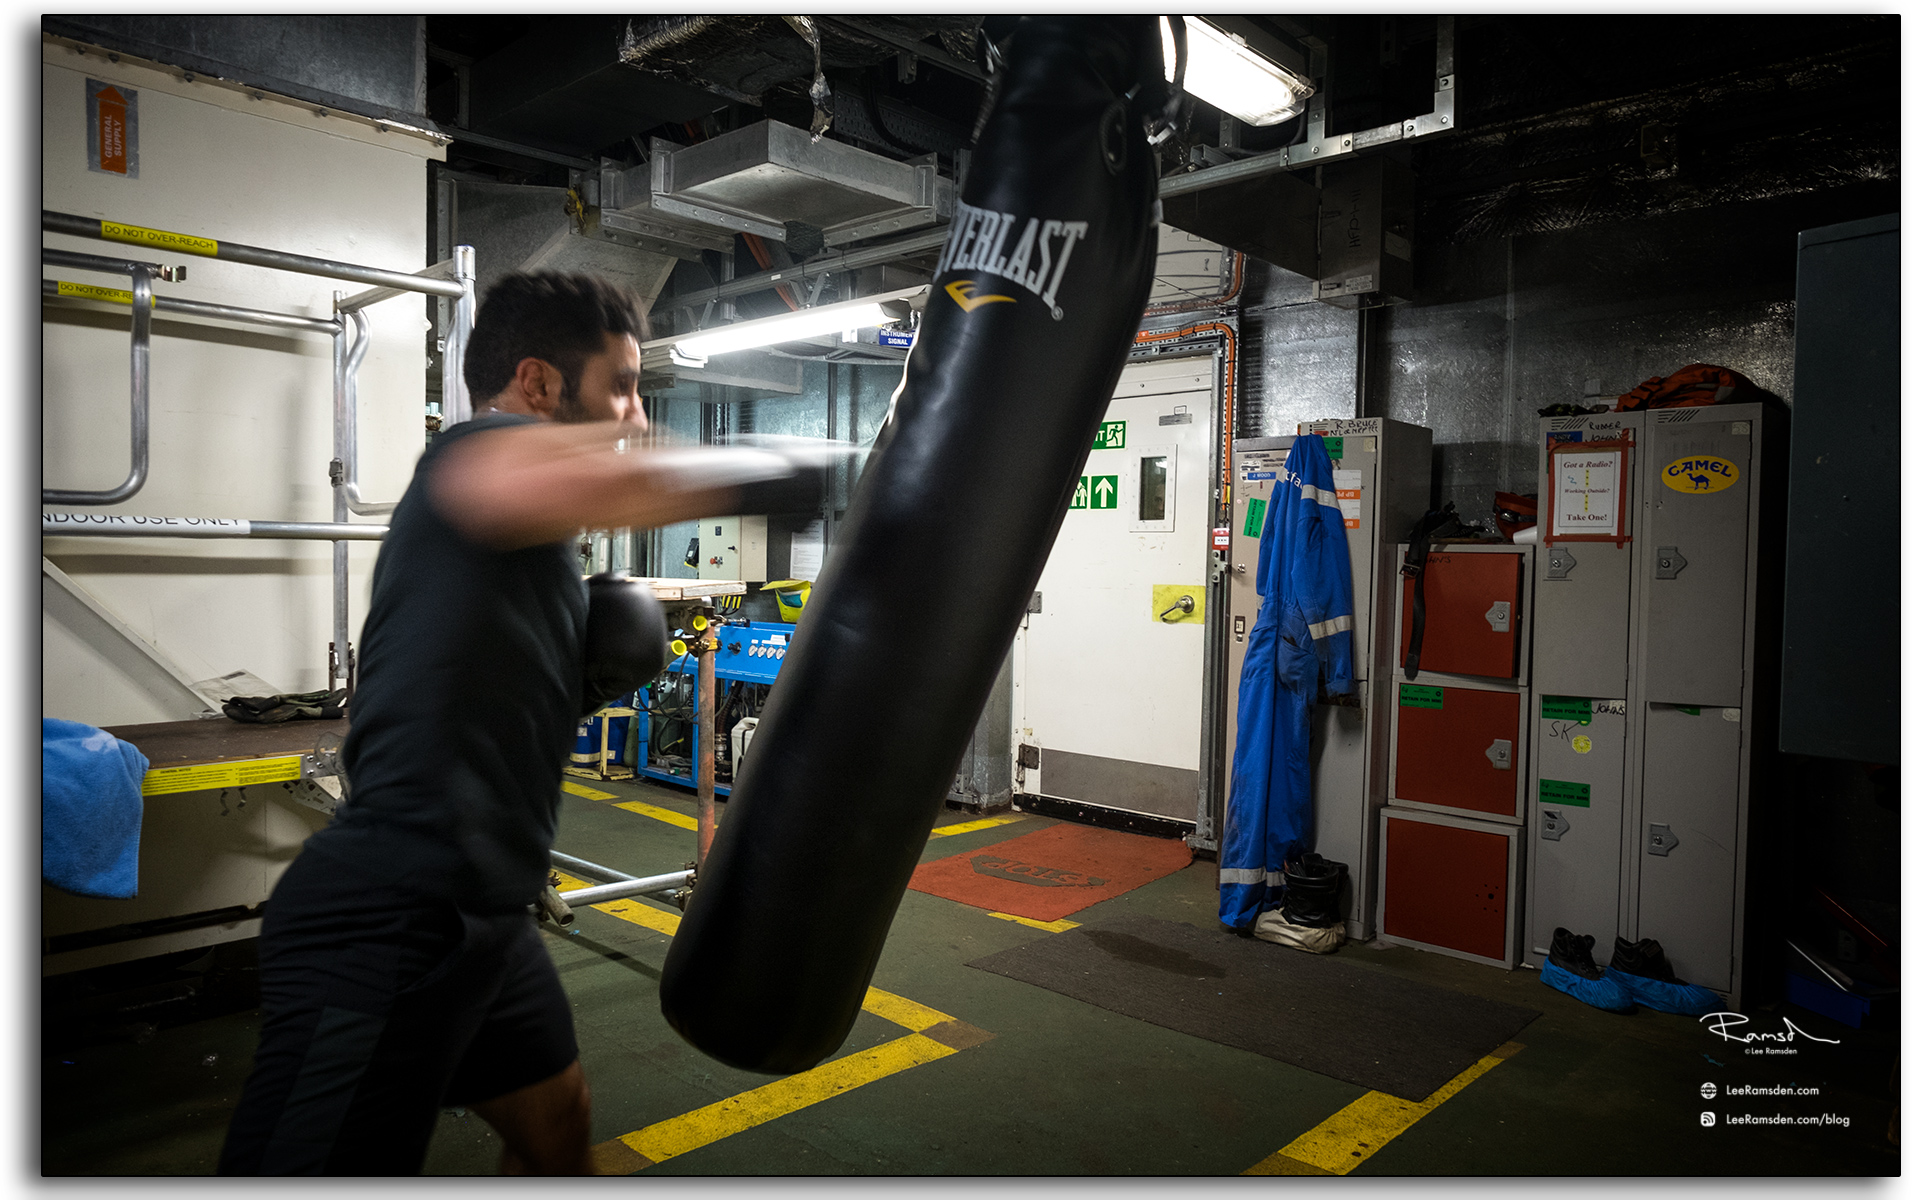 Boxing, Yahia Imam, BP, Petrofac, offshore, fittness, sports, photo taken by, Lee Ramsden.